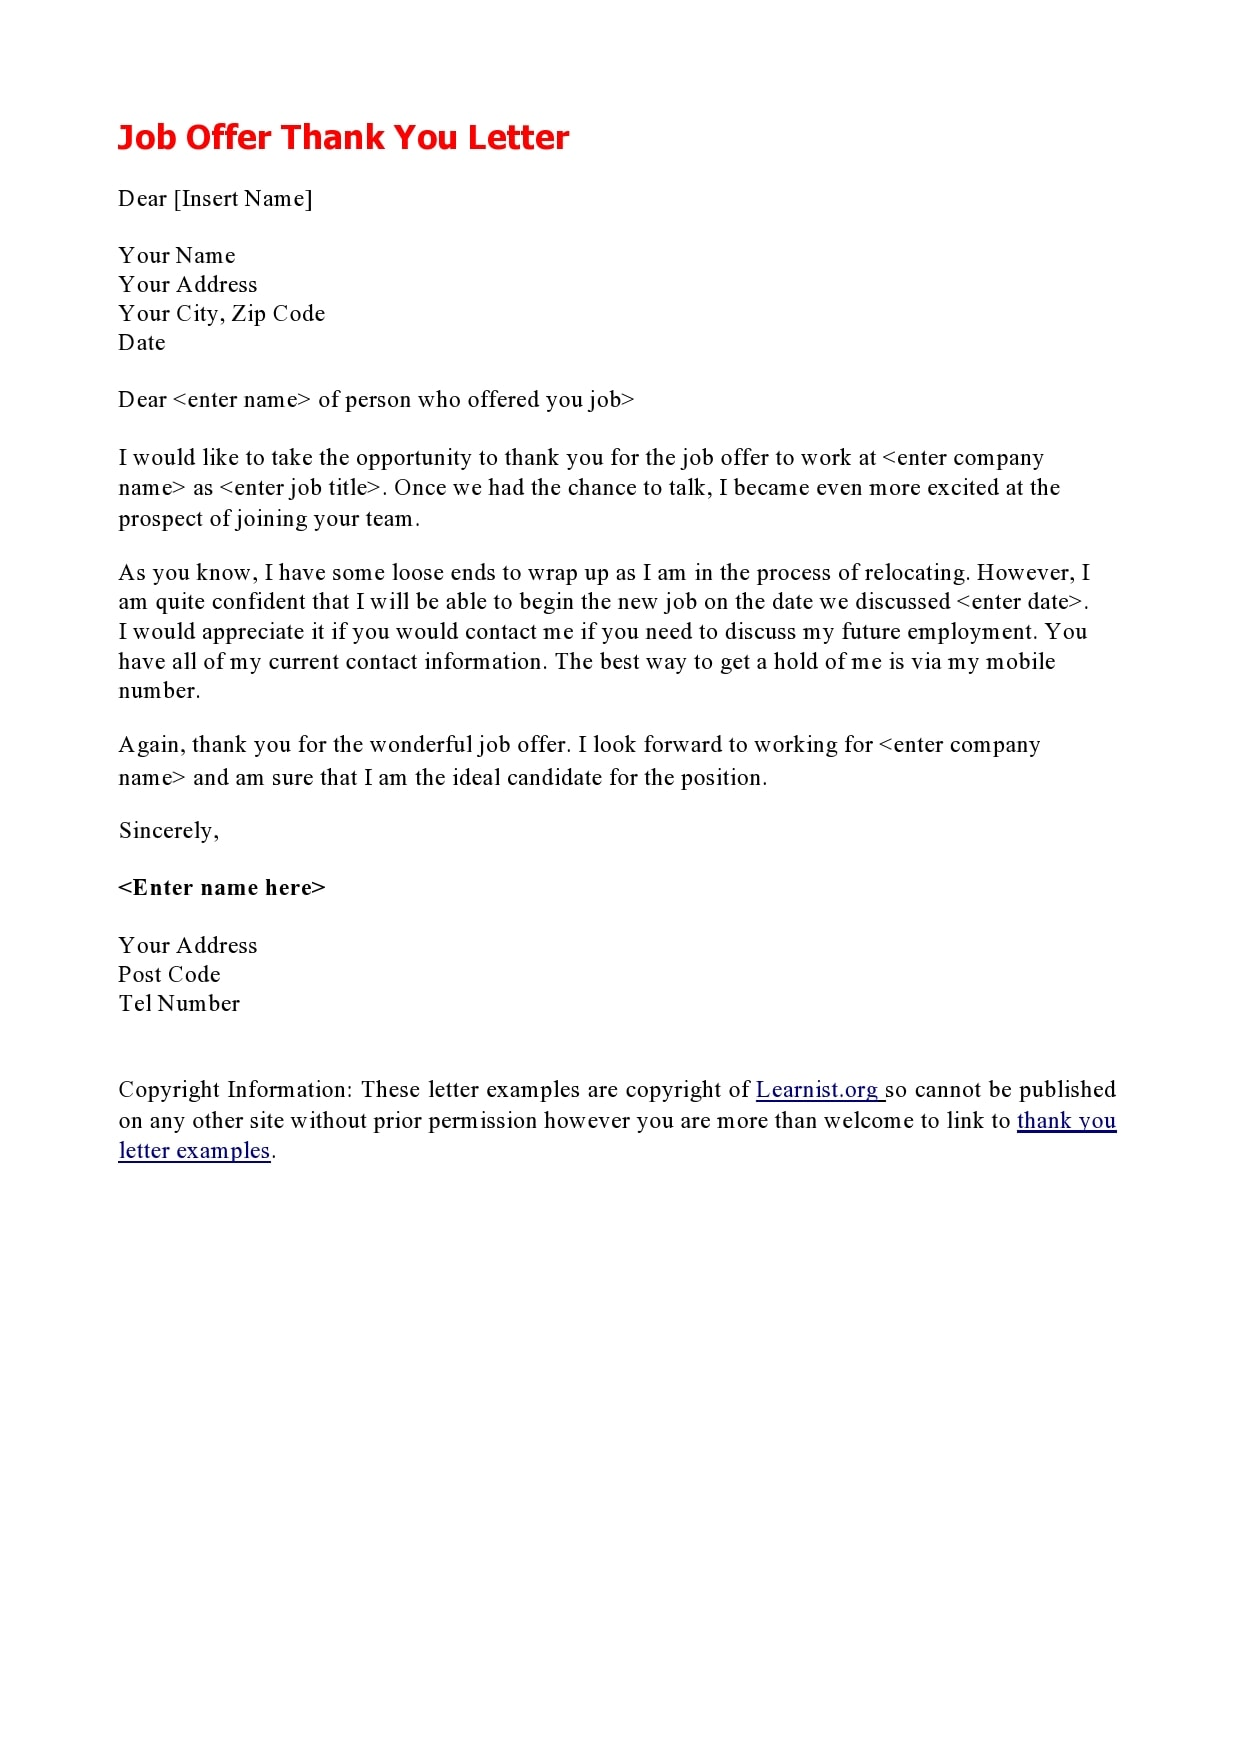 thank you letter for job offer 04